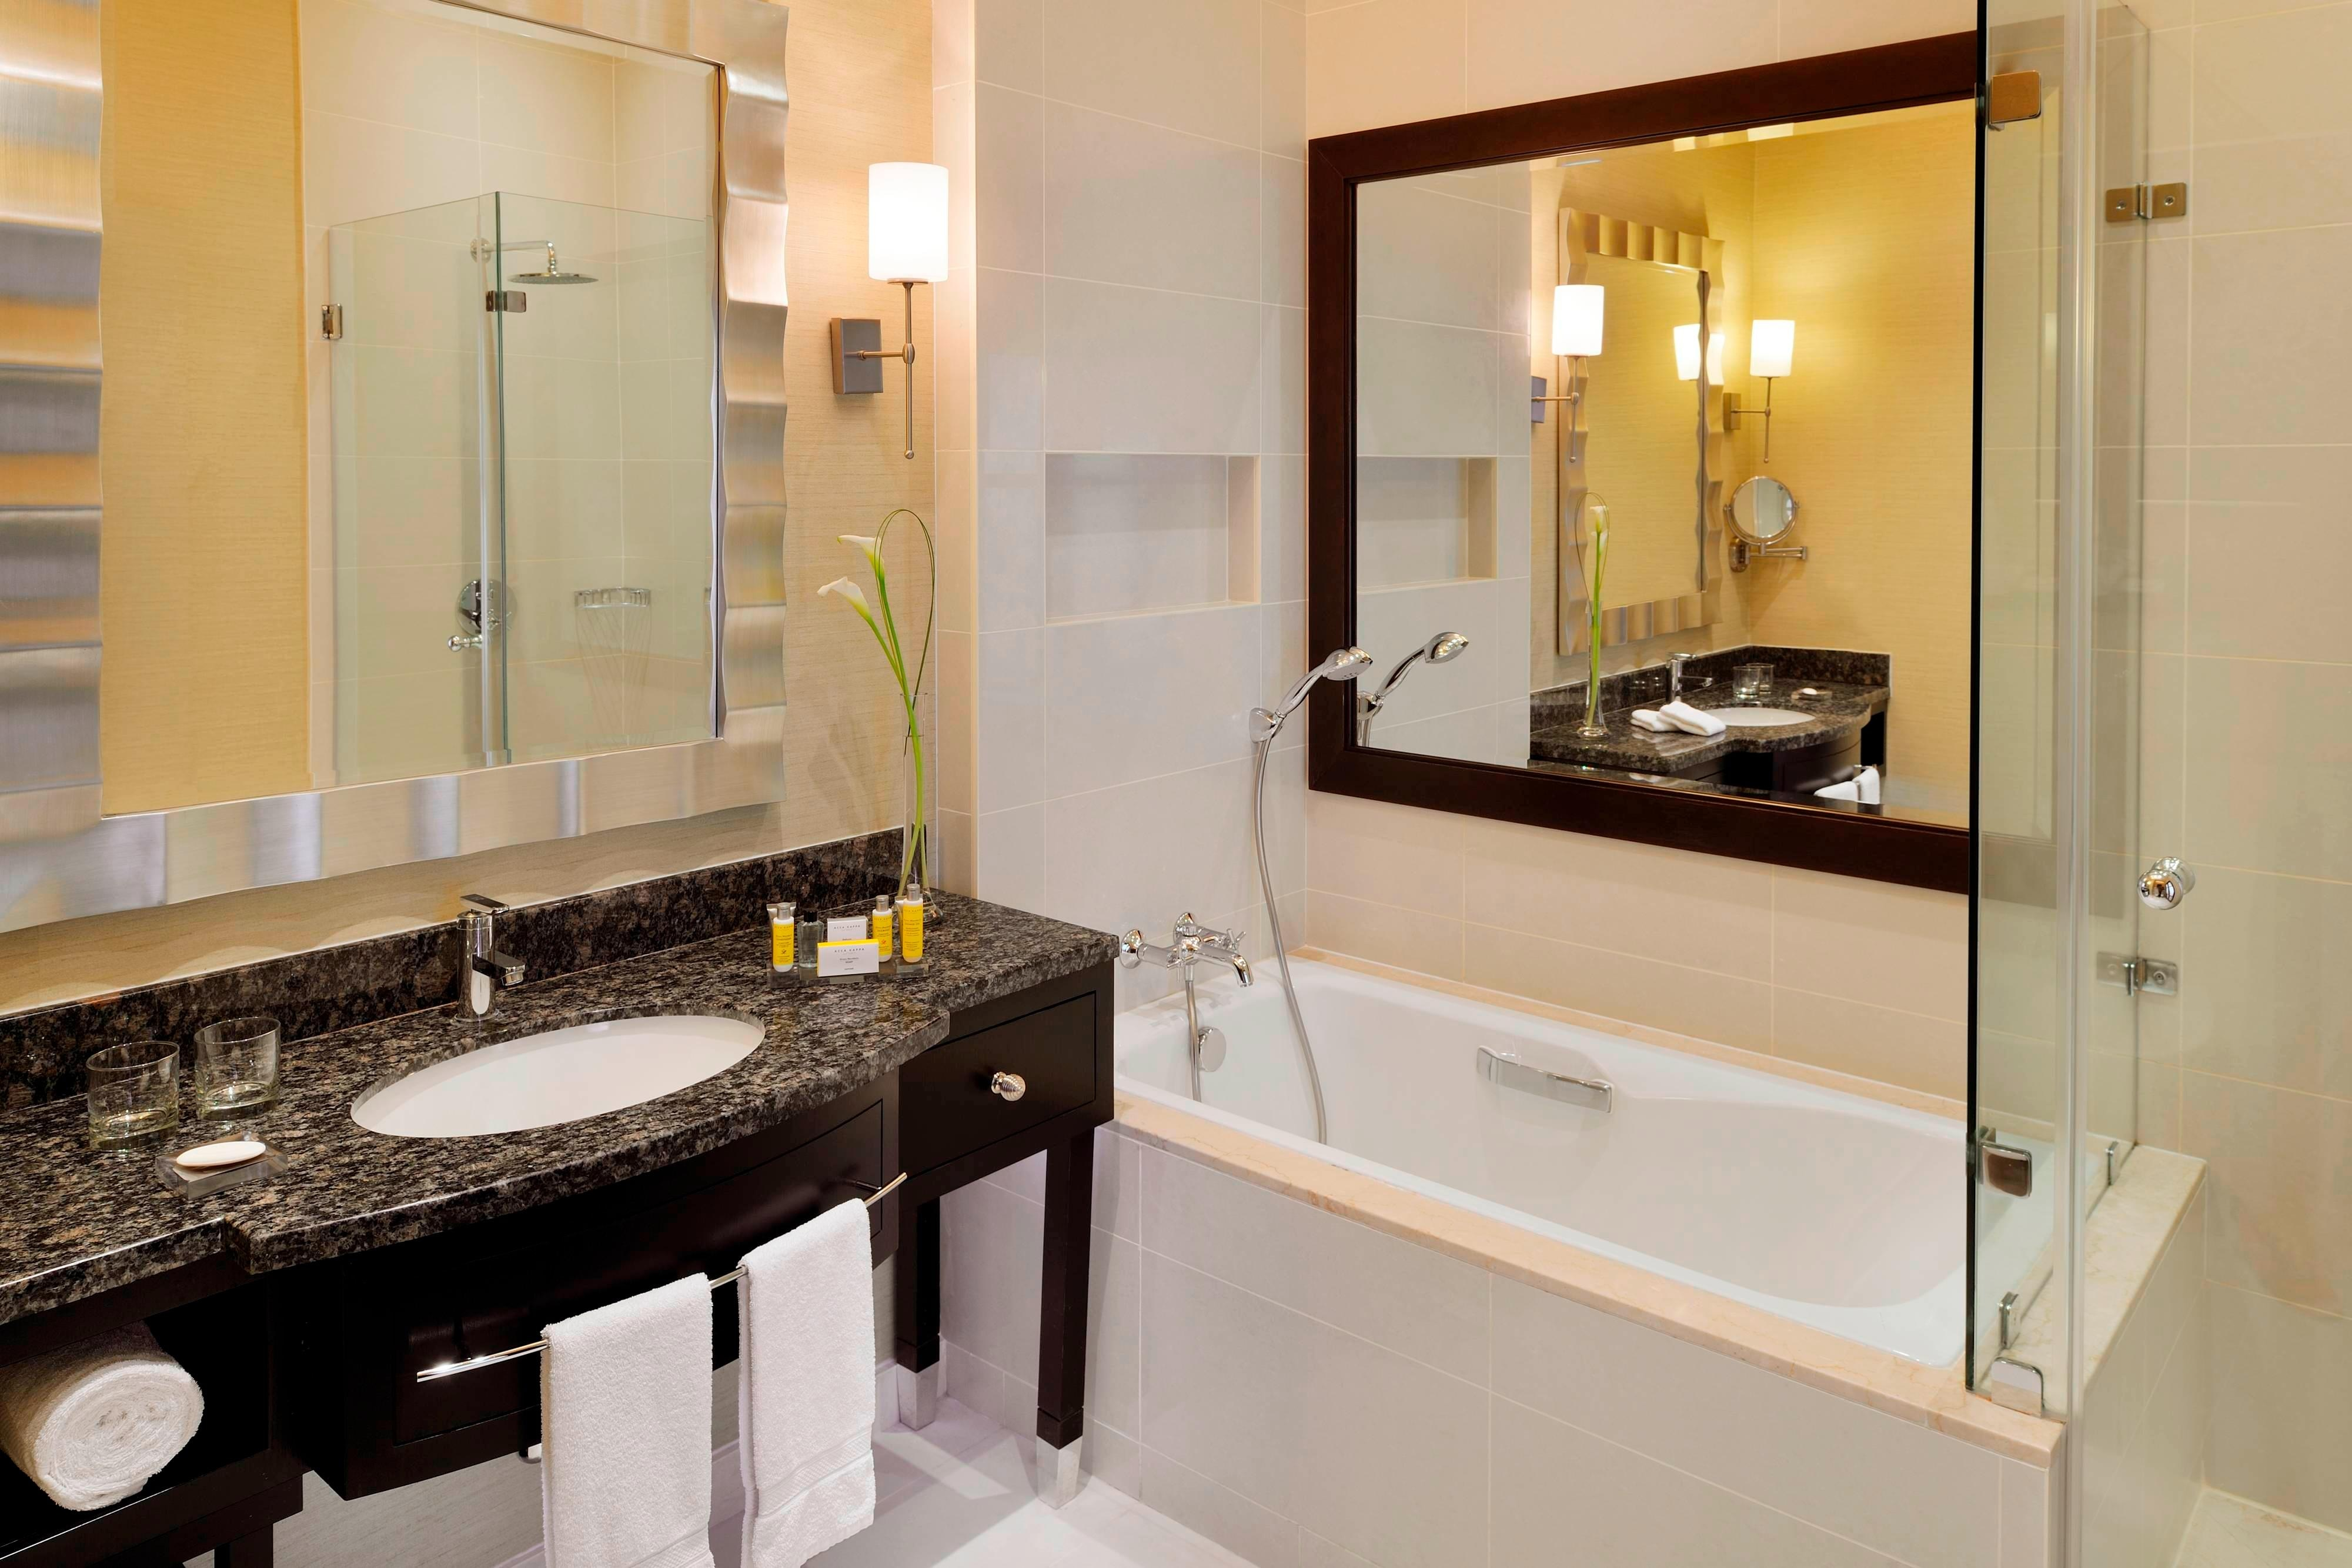 Guest bathroom in Doha hotel